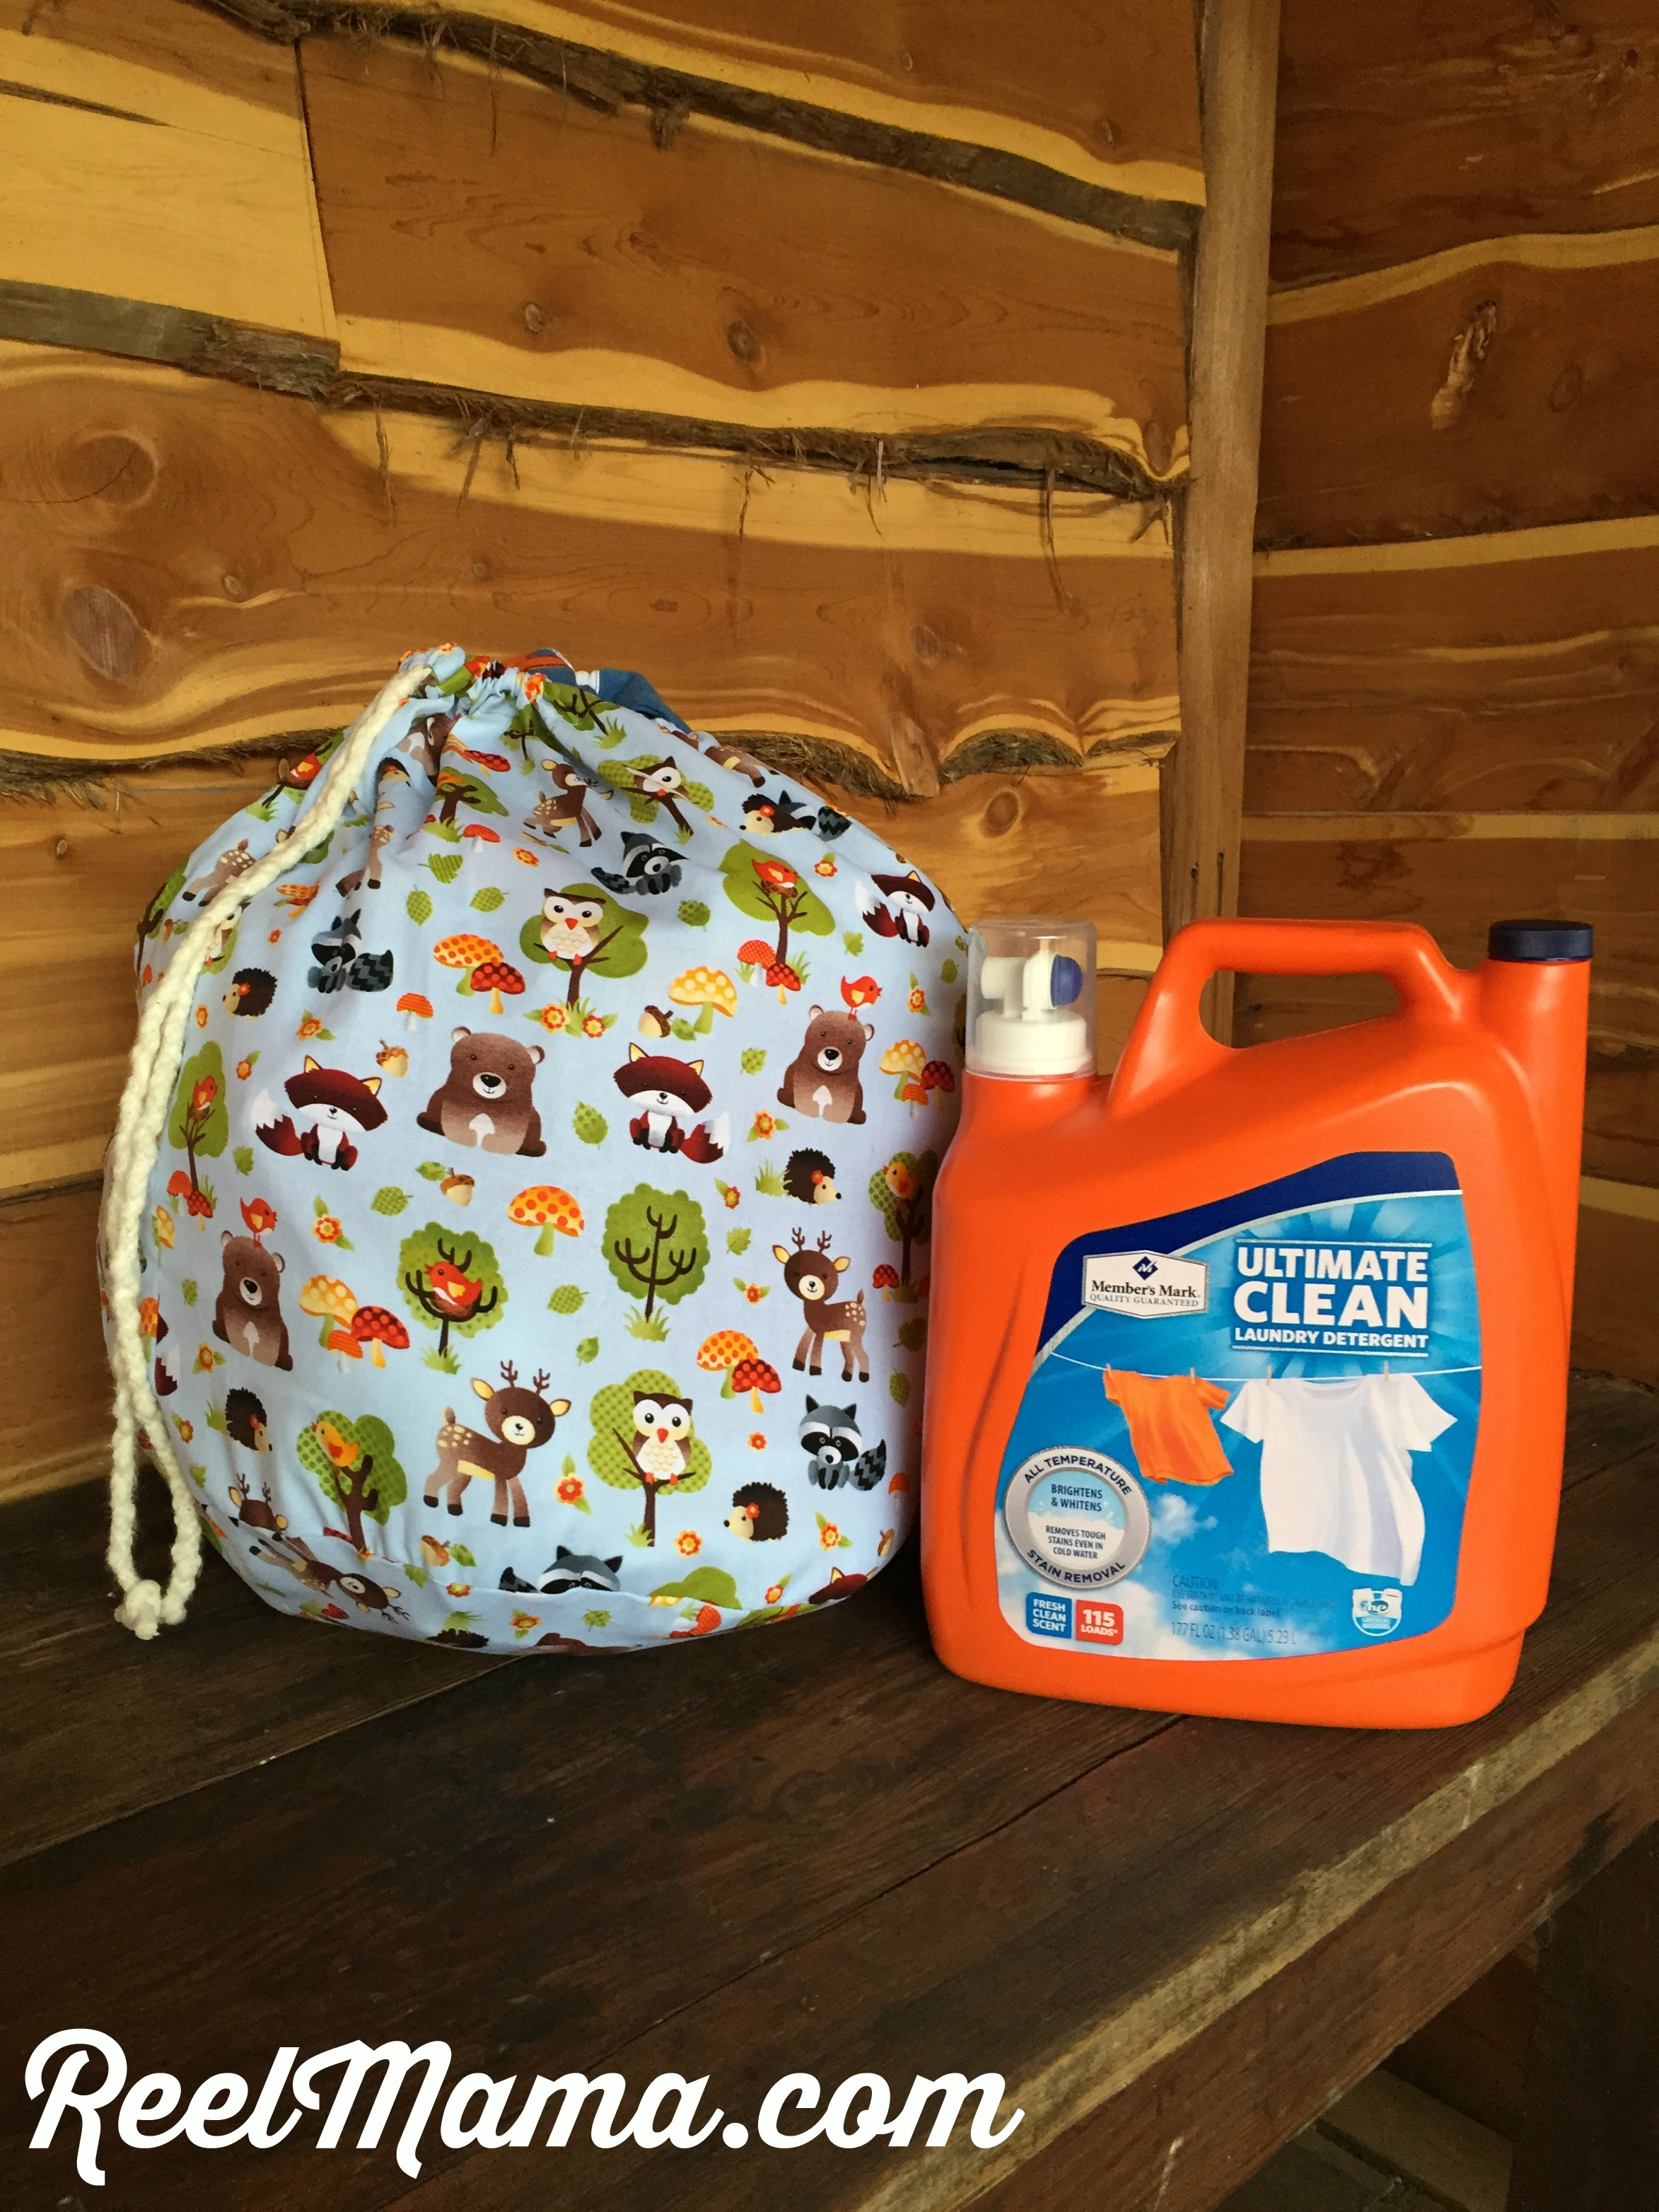 Member's Mark Ultimate Clean Liquid Laundry Cleaner is wonderful for washing baby clothes. Pictured here